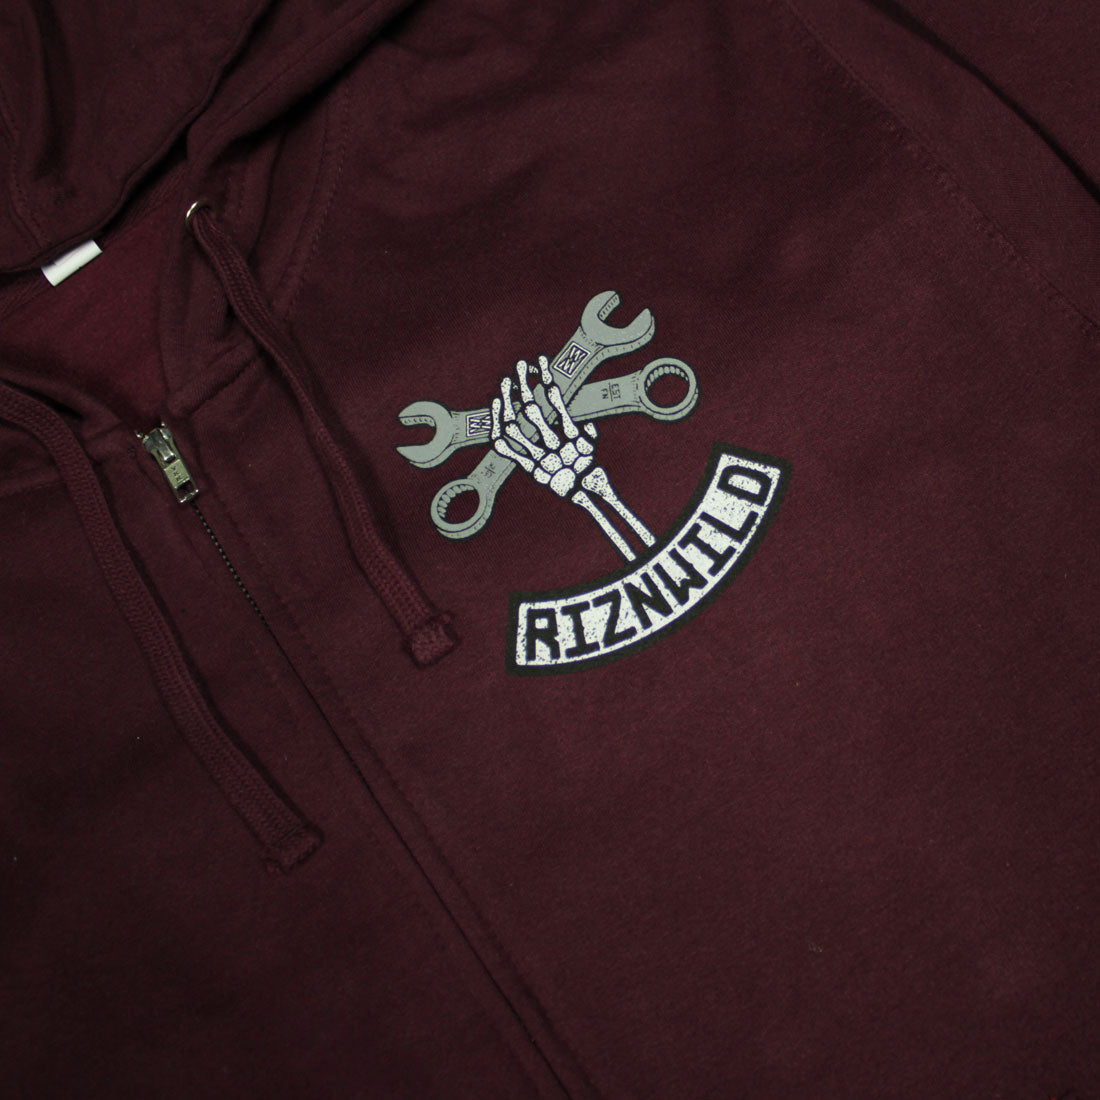 RIZNWILD | Wrench Twist logo left chest on a zip up sweatshirt